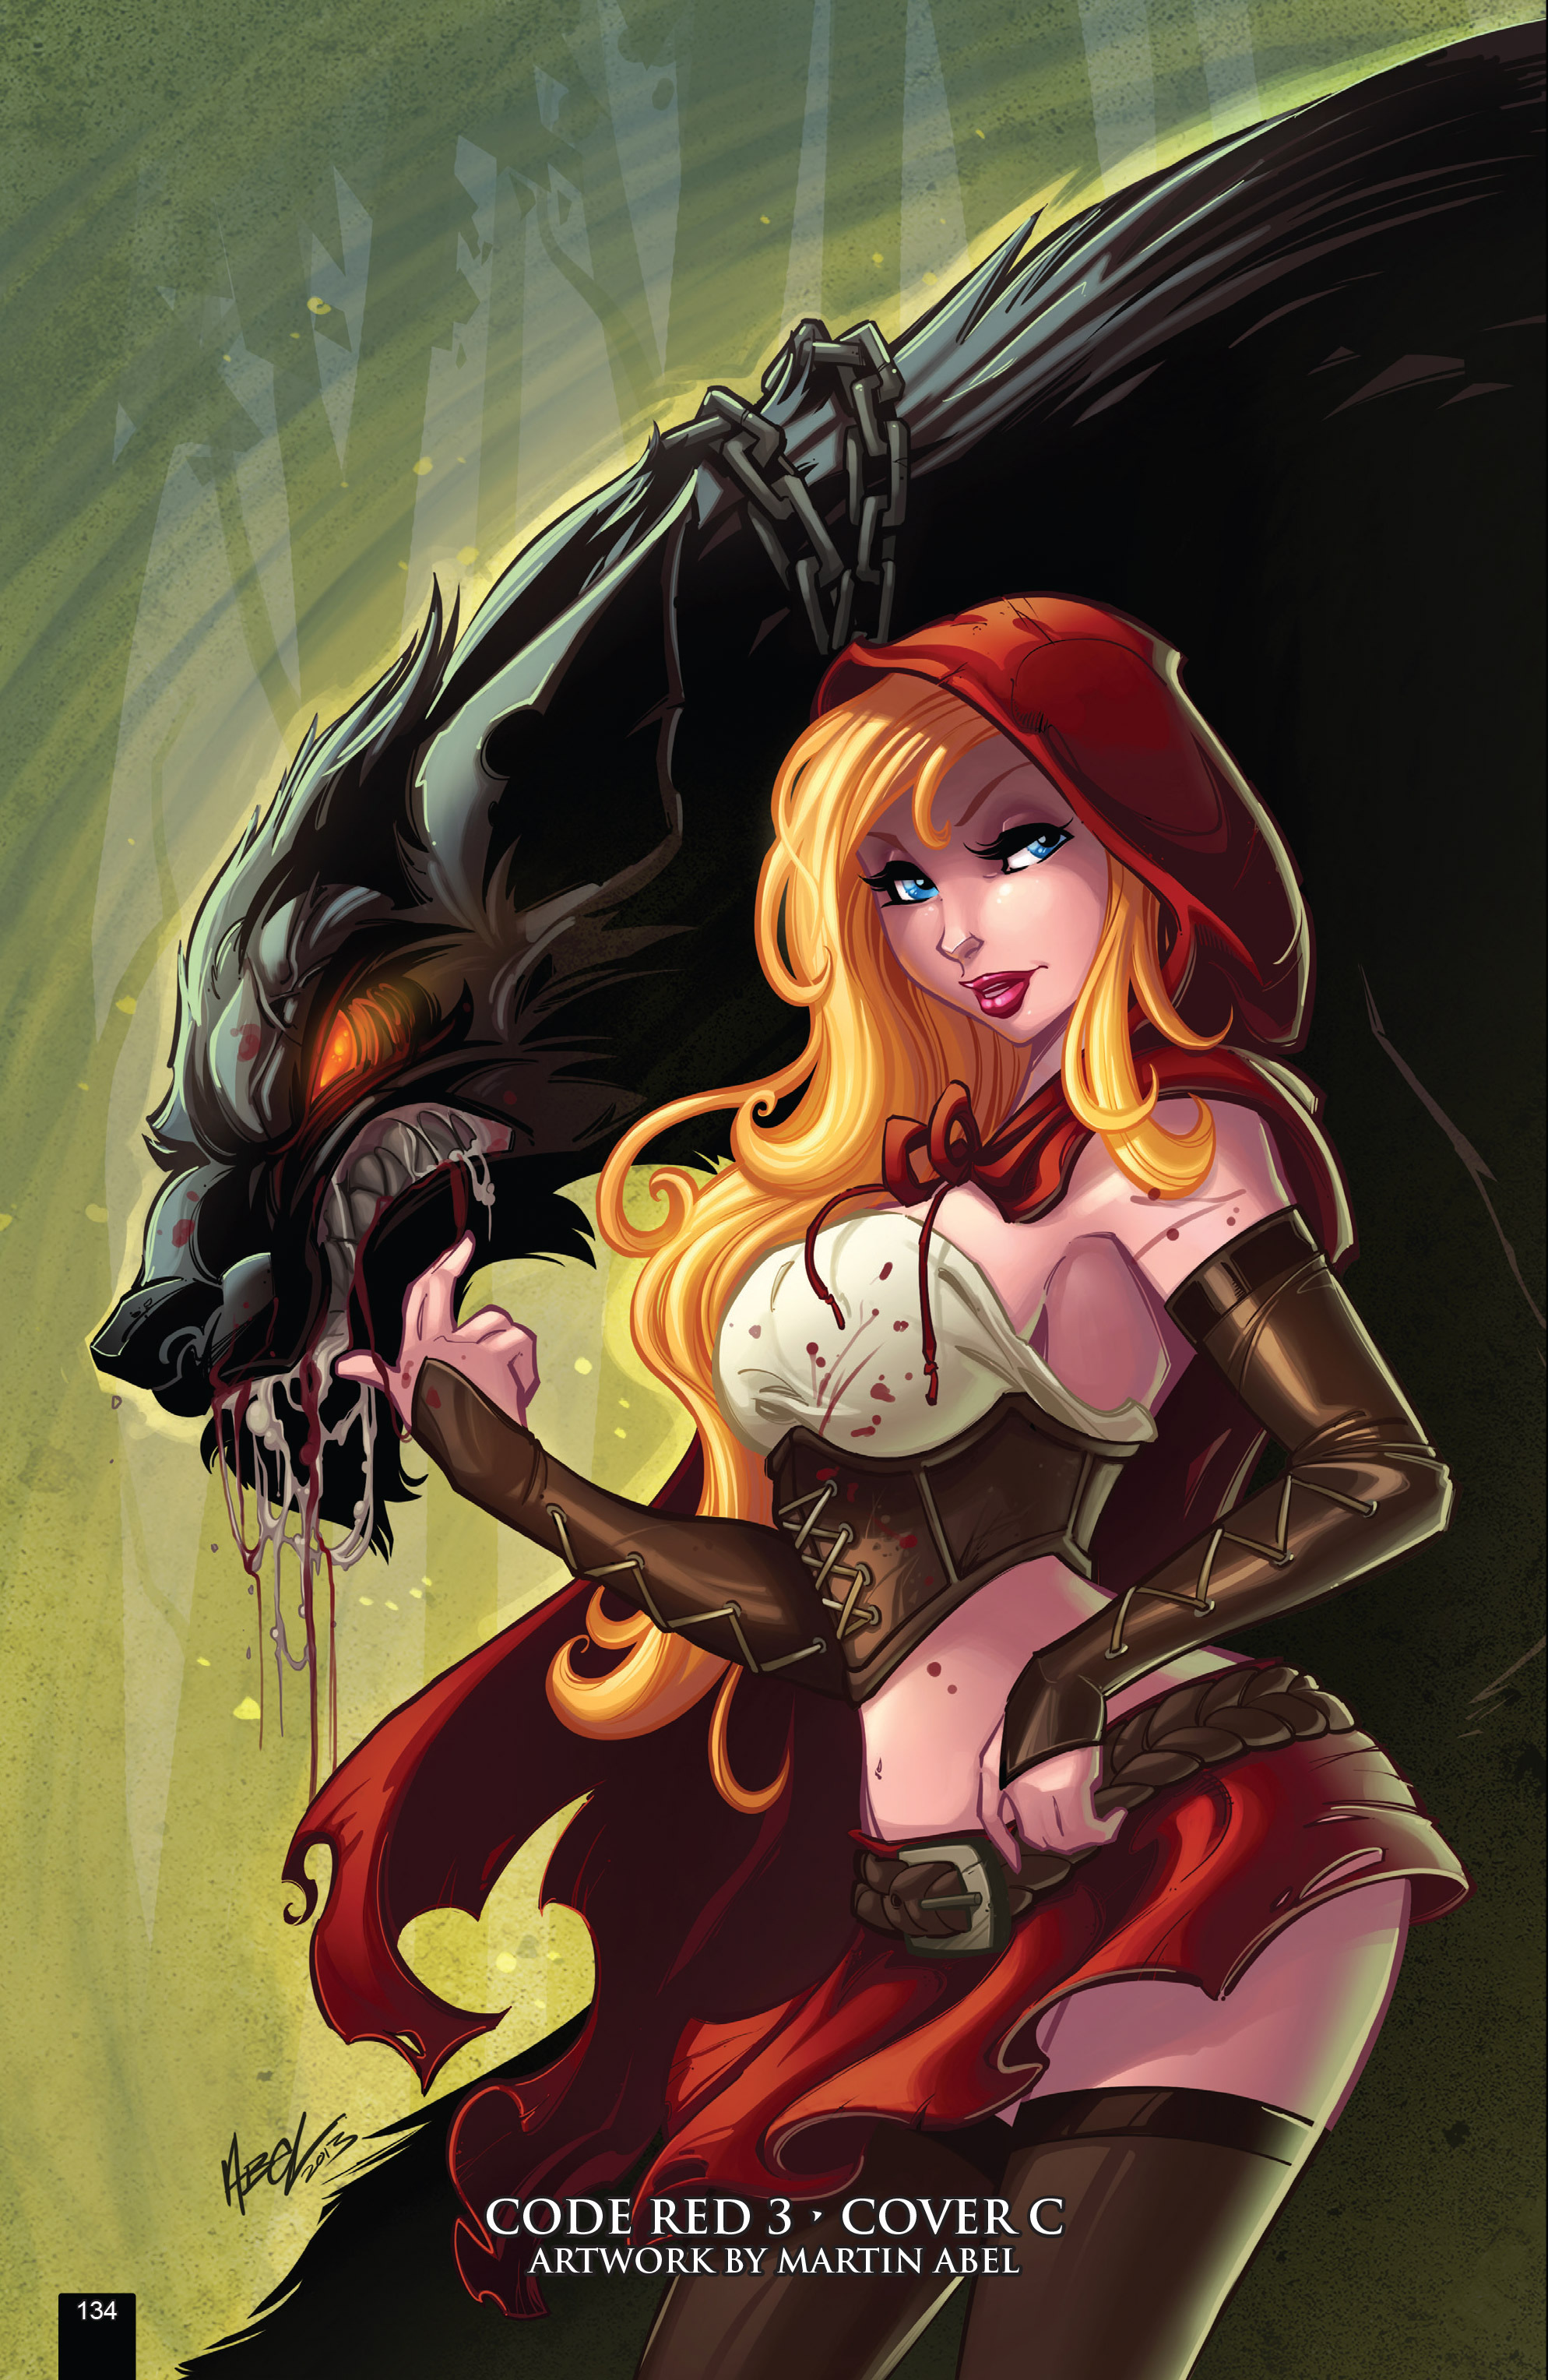 Read online Grimm Fairy Tales presents Code Red comic -  Issue # TPB - 134